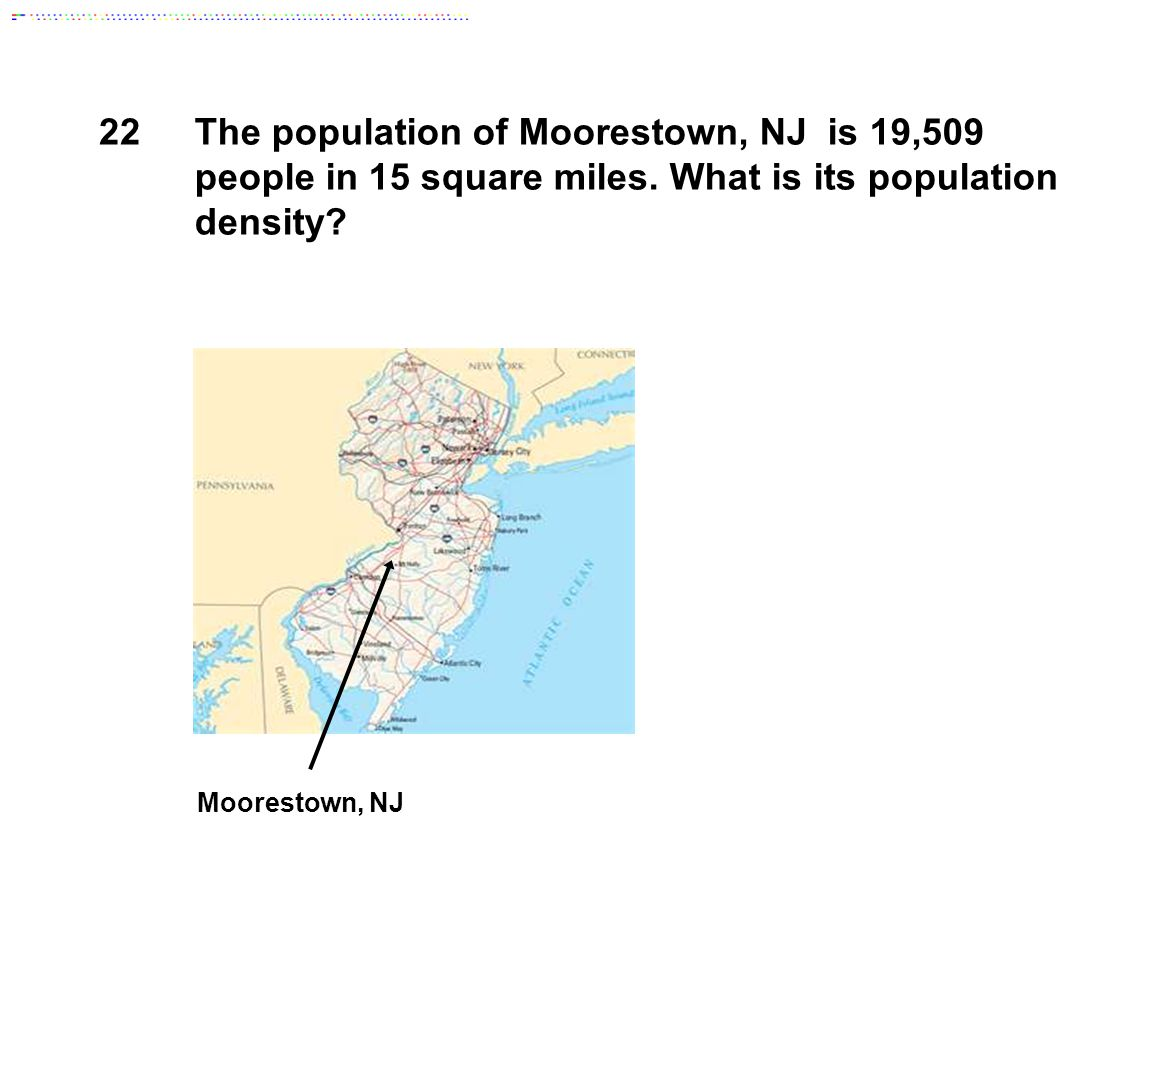 22 The population of Moorestown, NJ is 19,509 people in 15 square miles. What is its population density